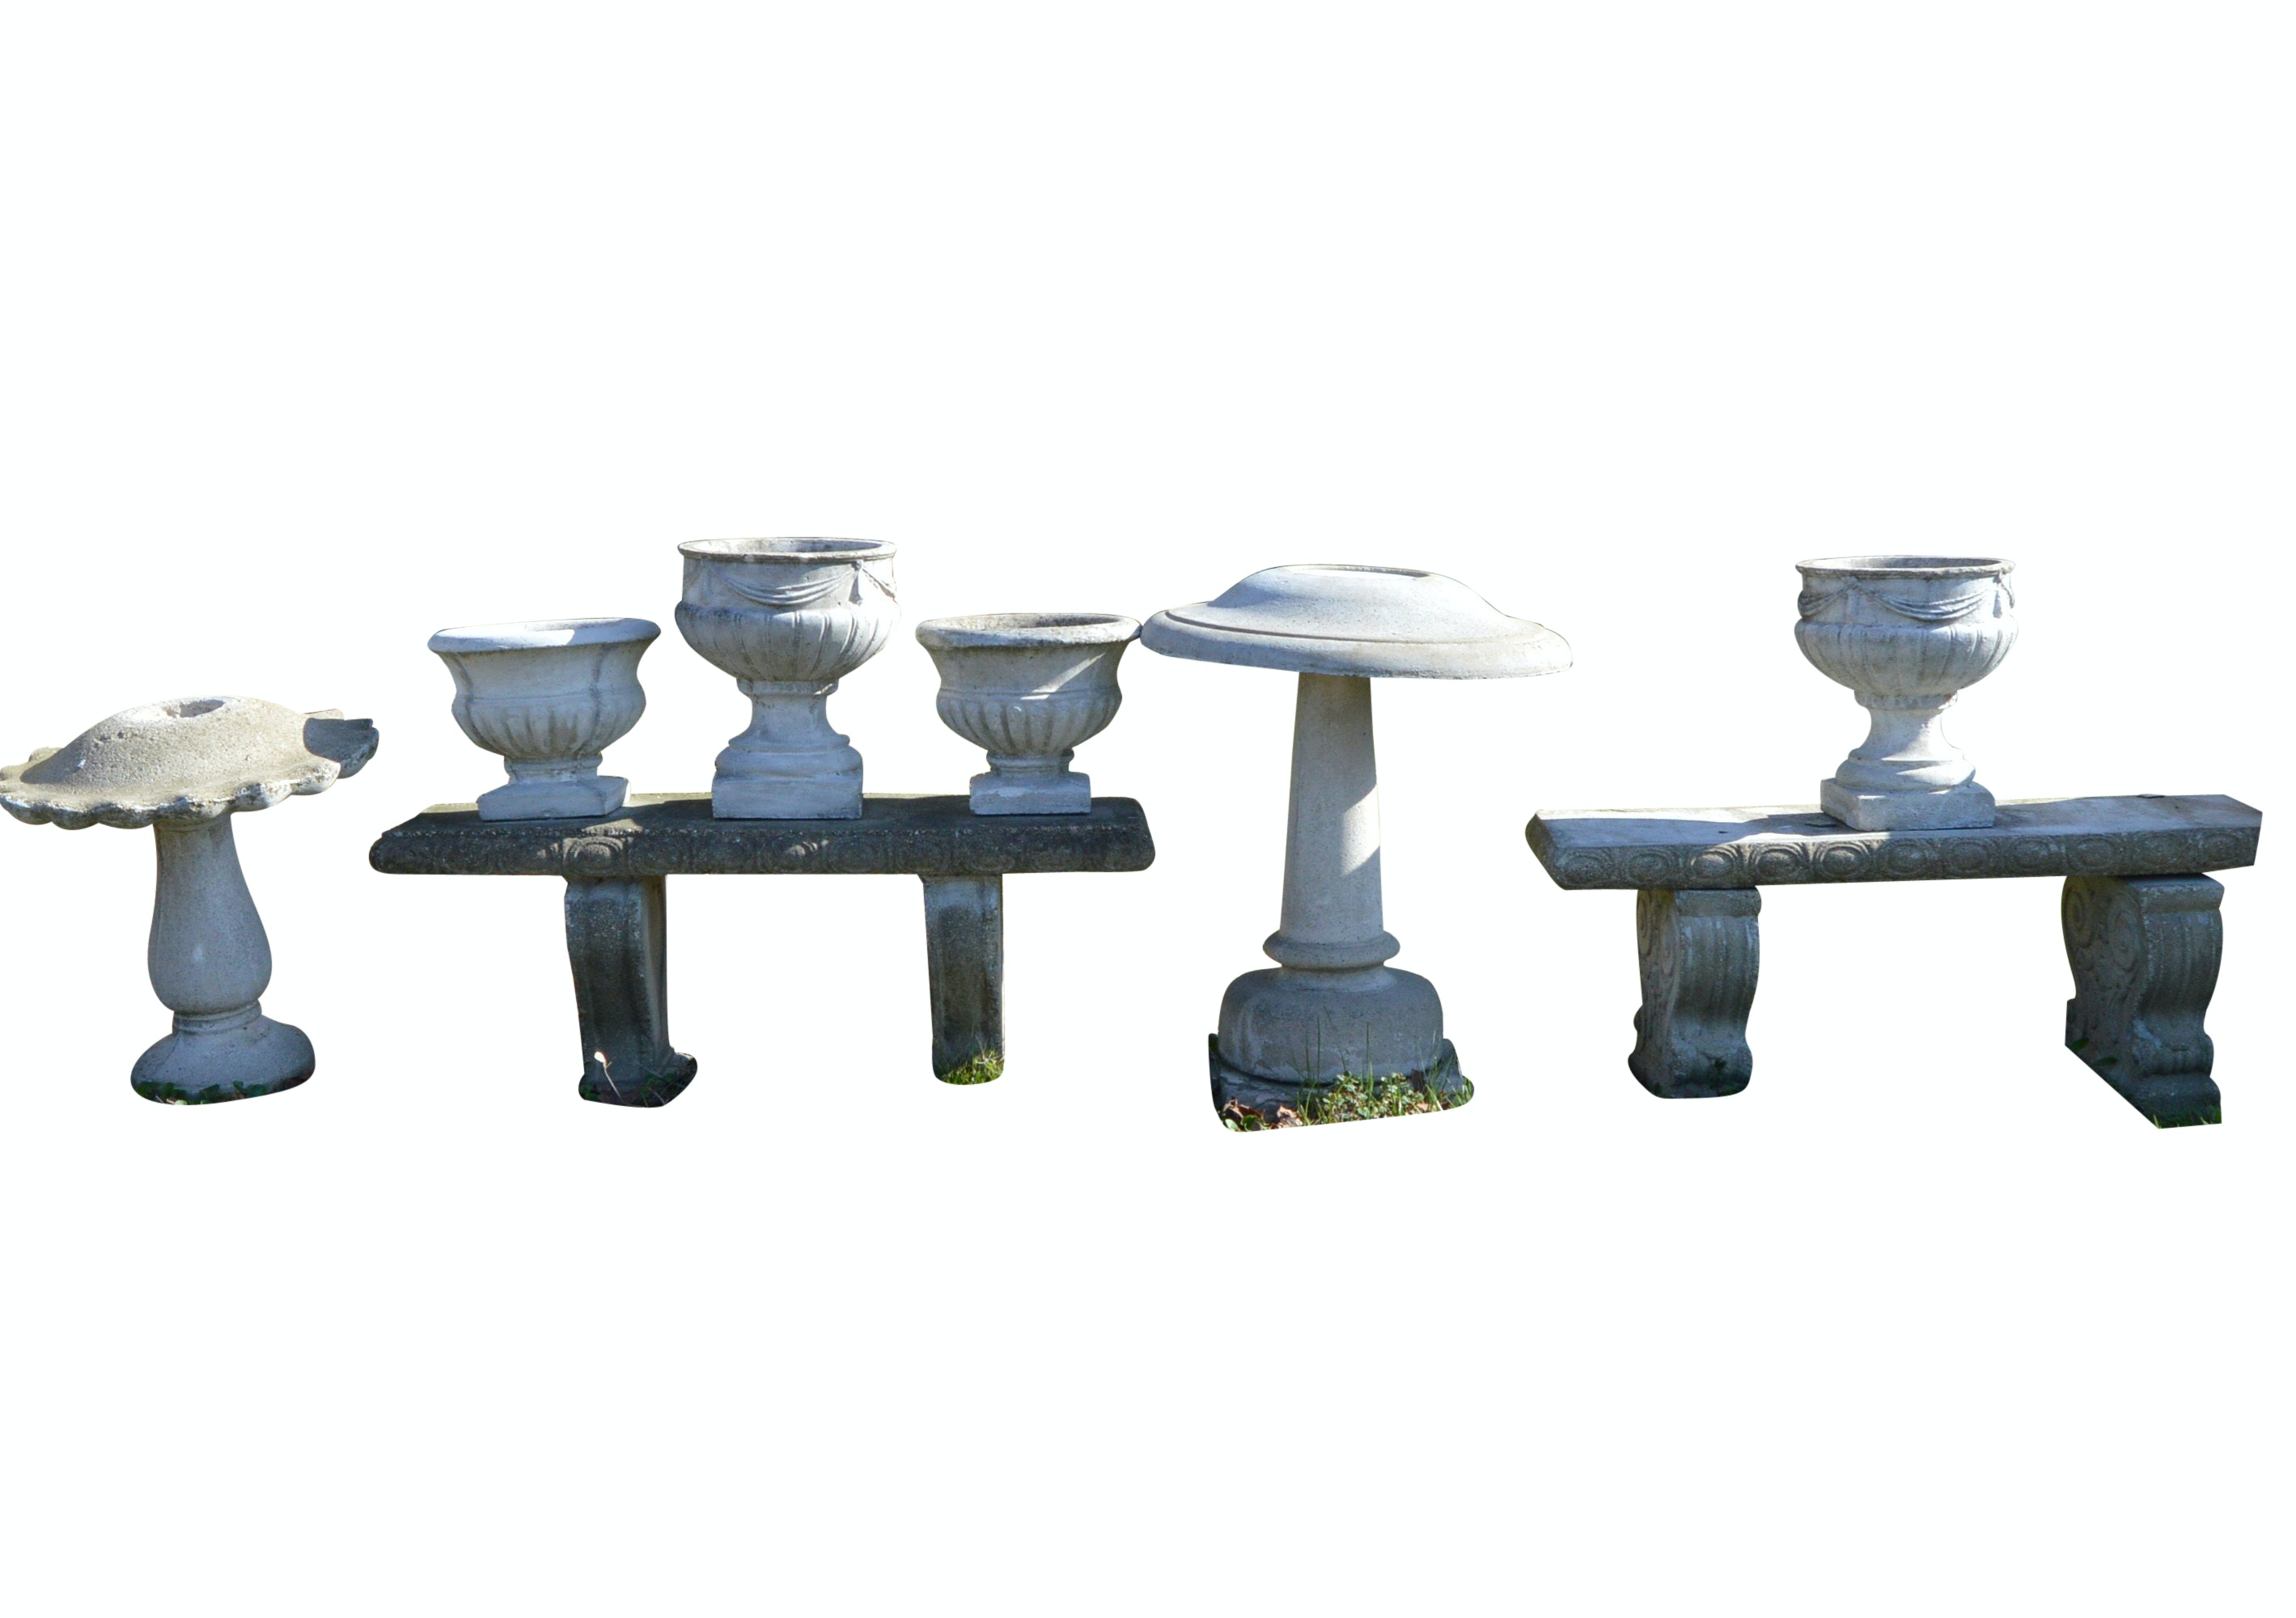 Concrete Benches, Planters and Birdbaths